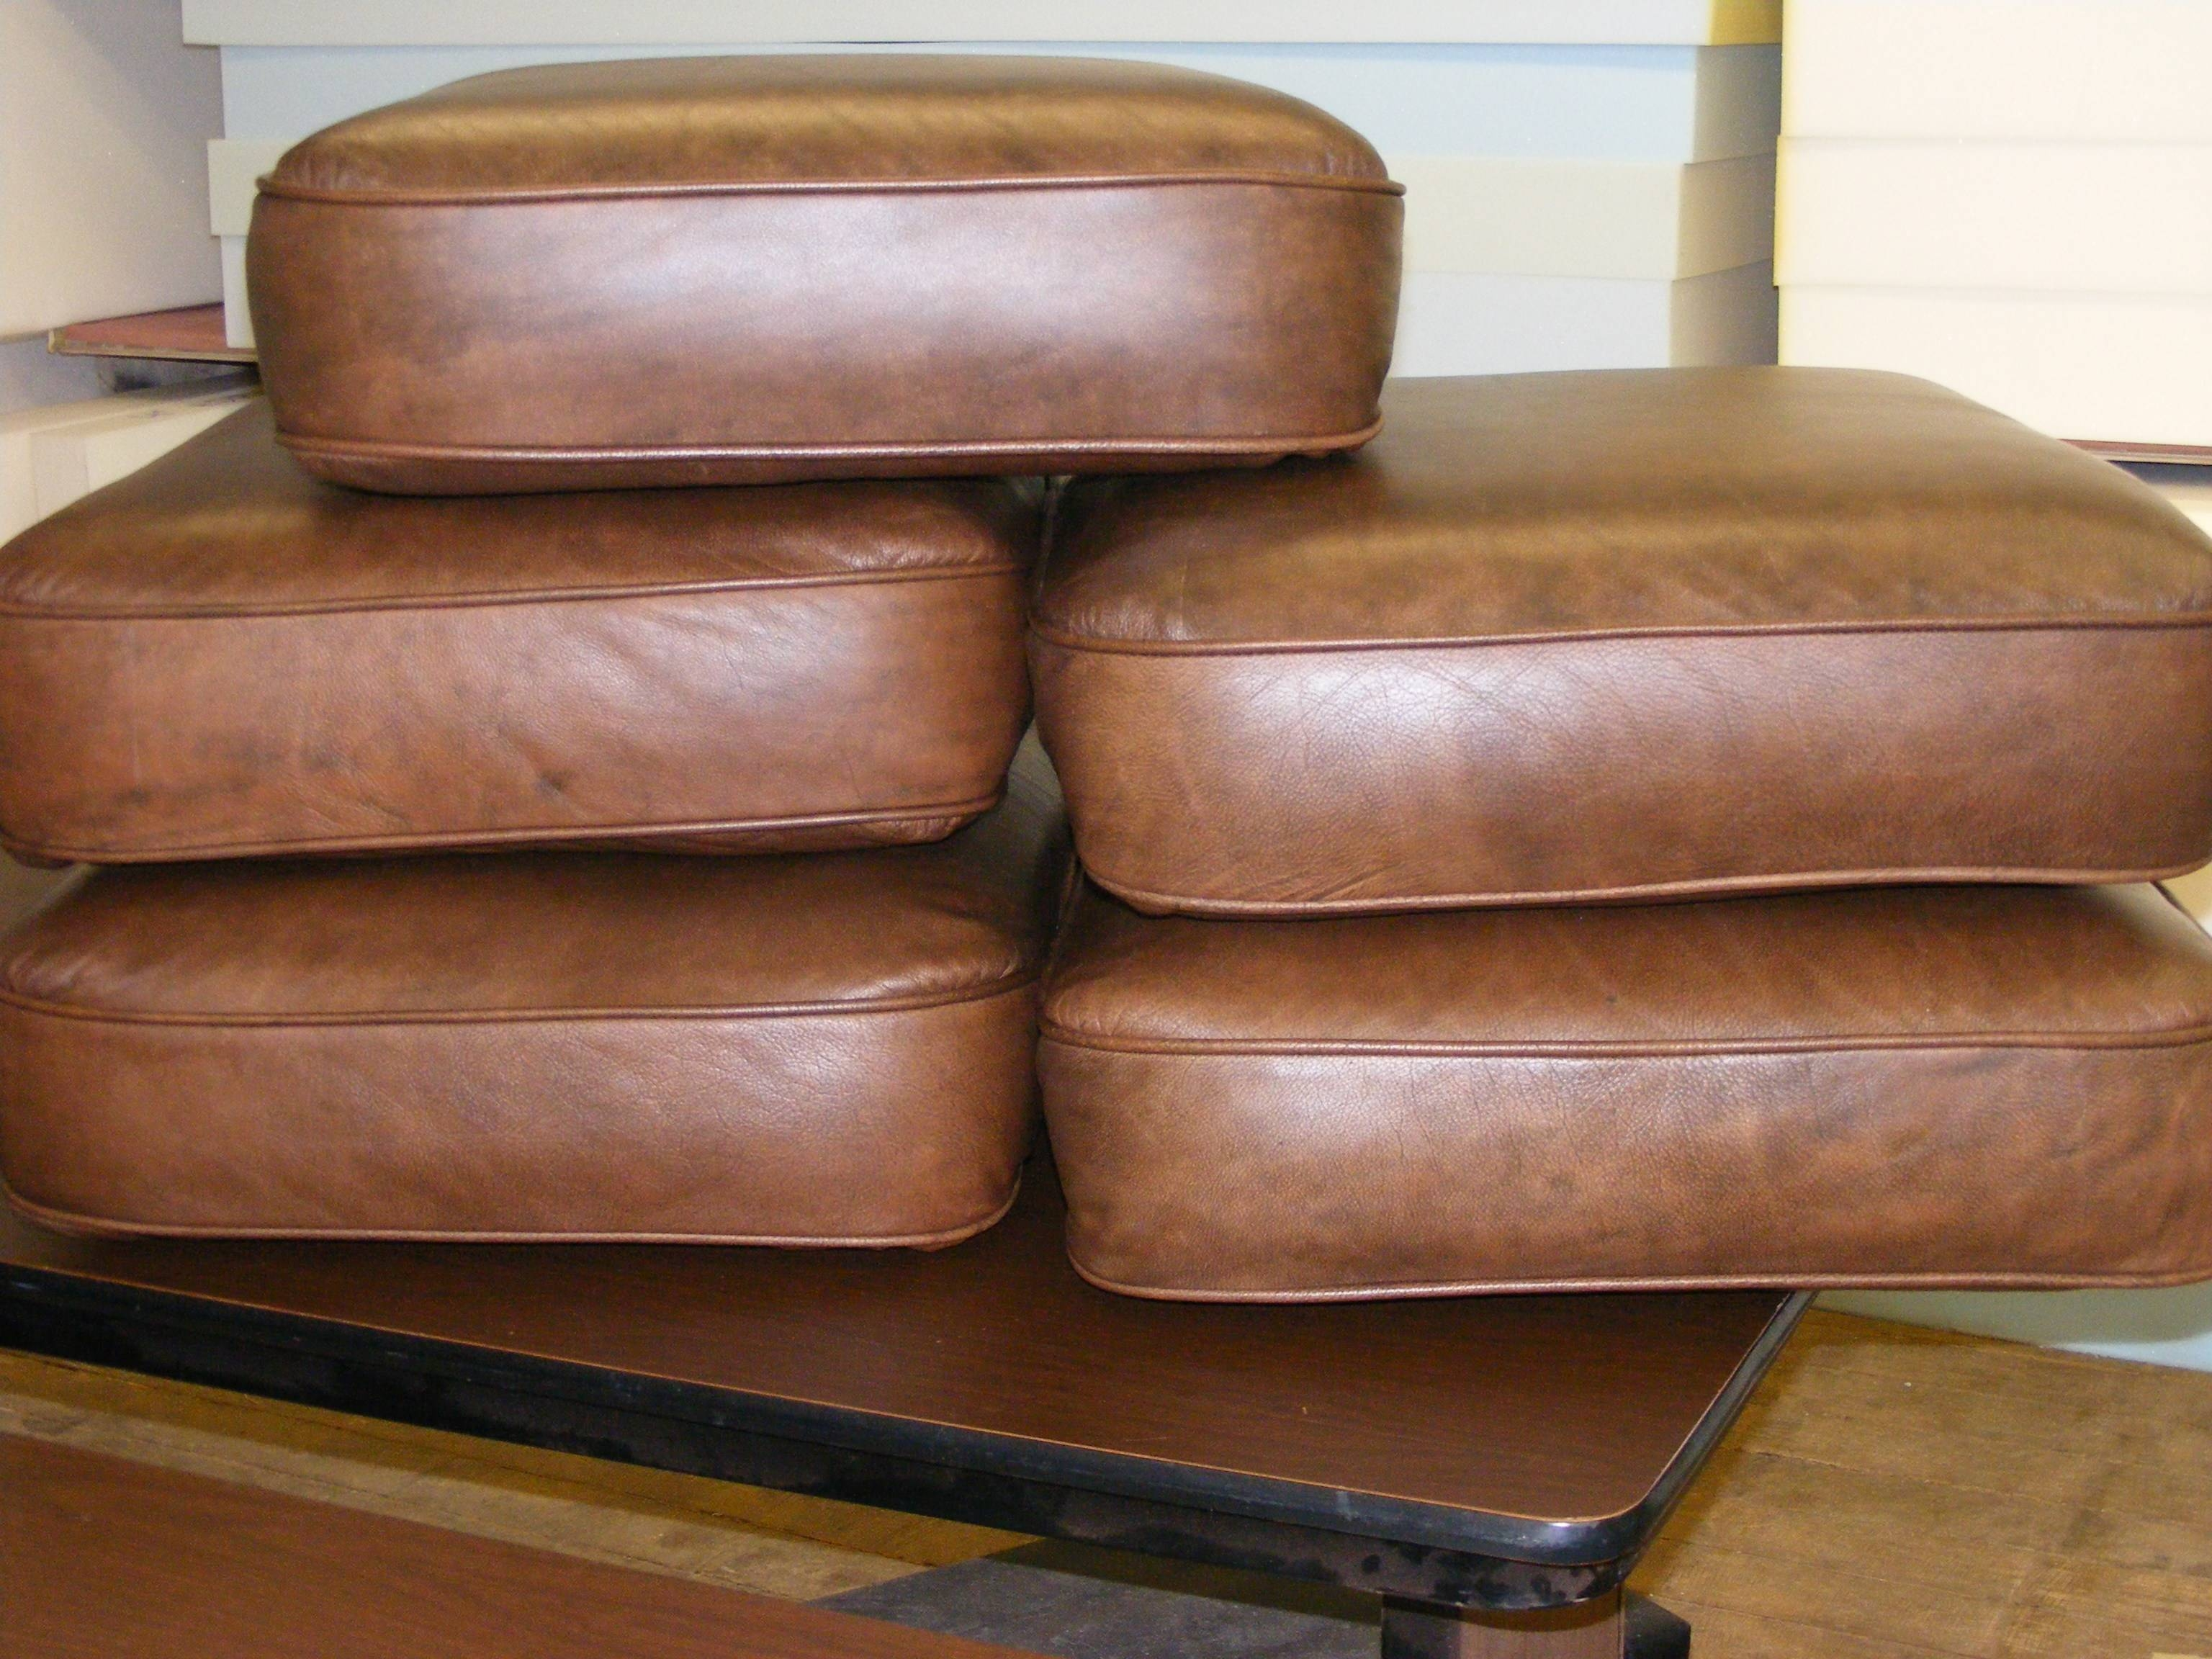 Replacement Leather Sofa Cushions inside Sofa Cushion Covers (Image 12 of 15)